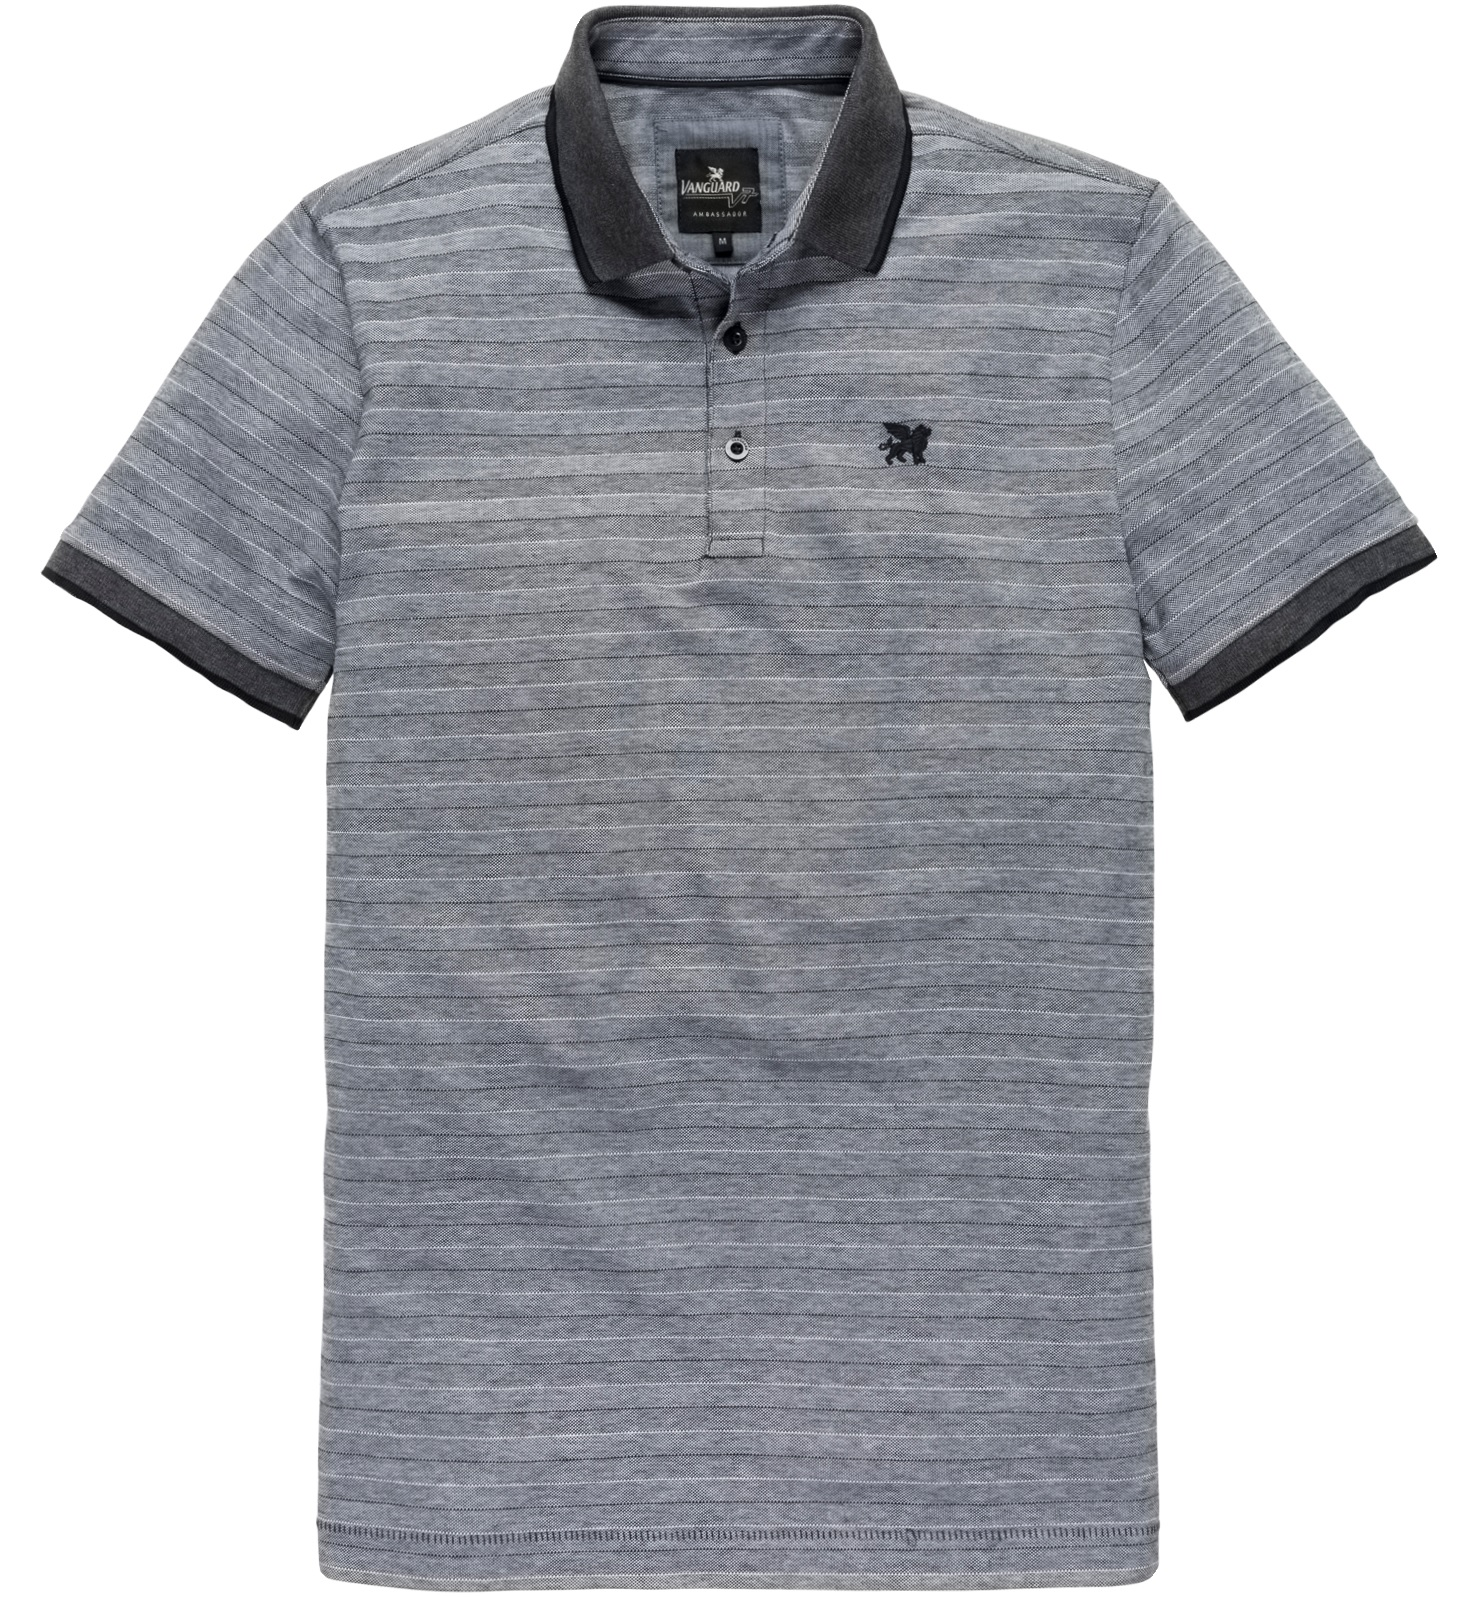 Vanguard Short sleeve polo pique two to VPSS182648 5294